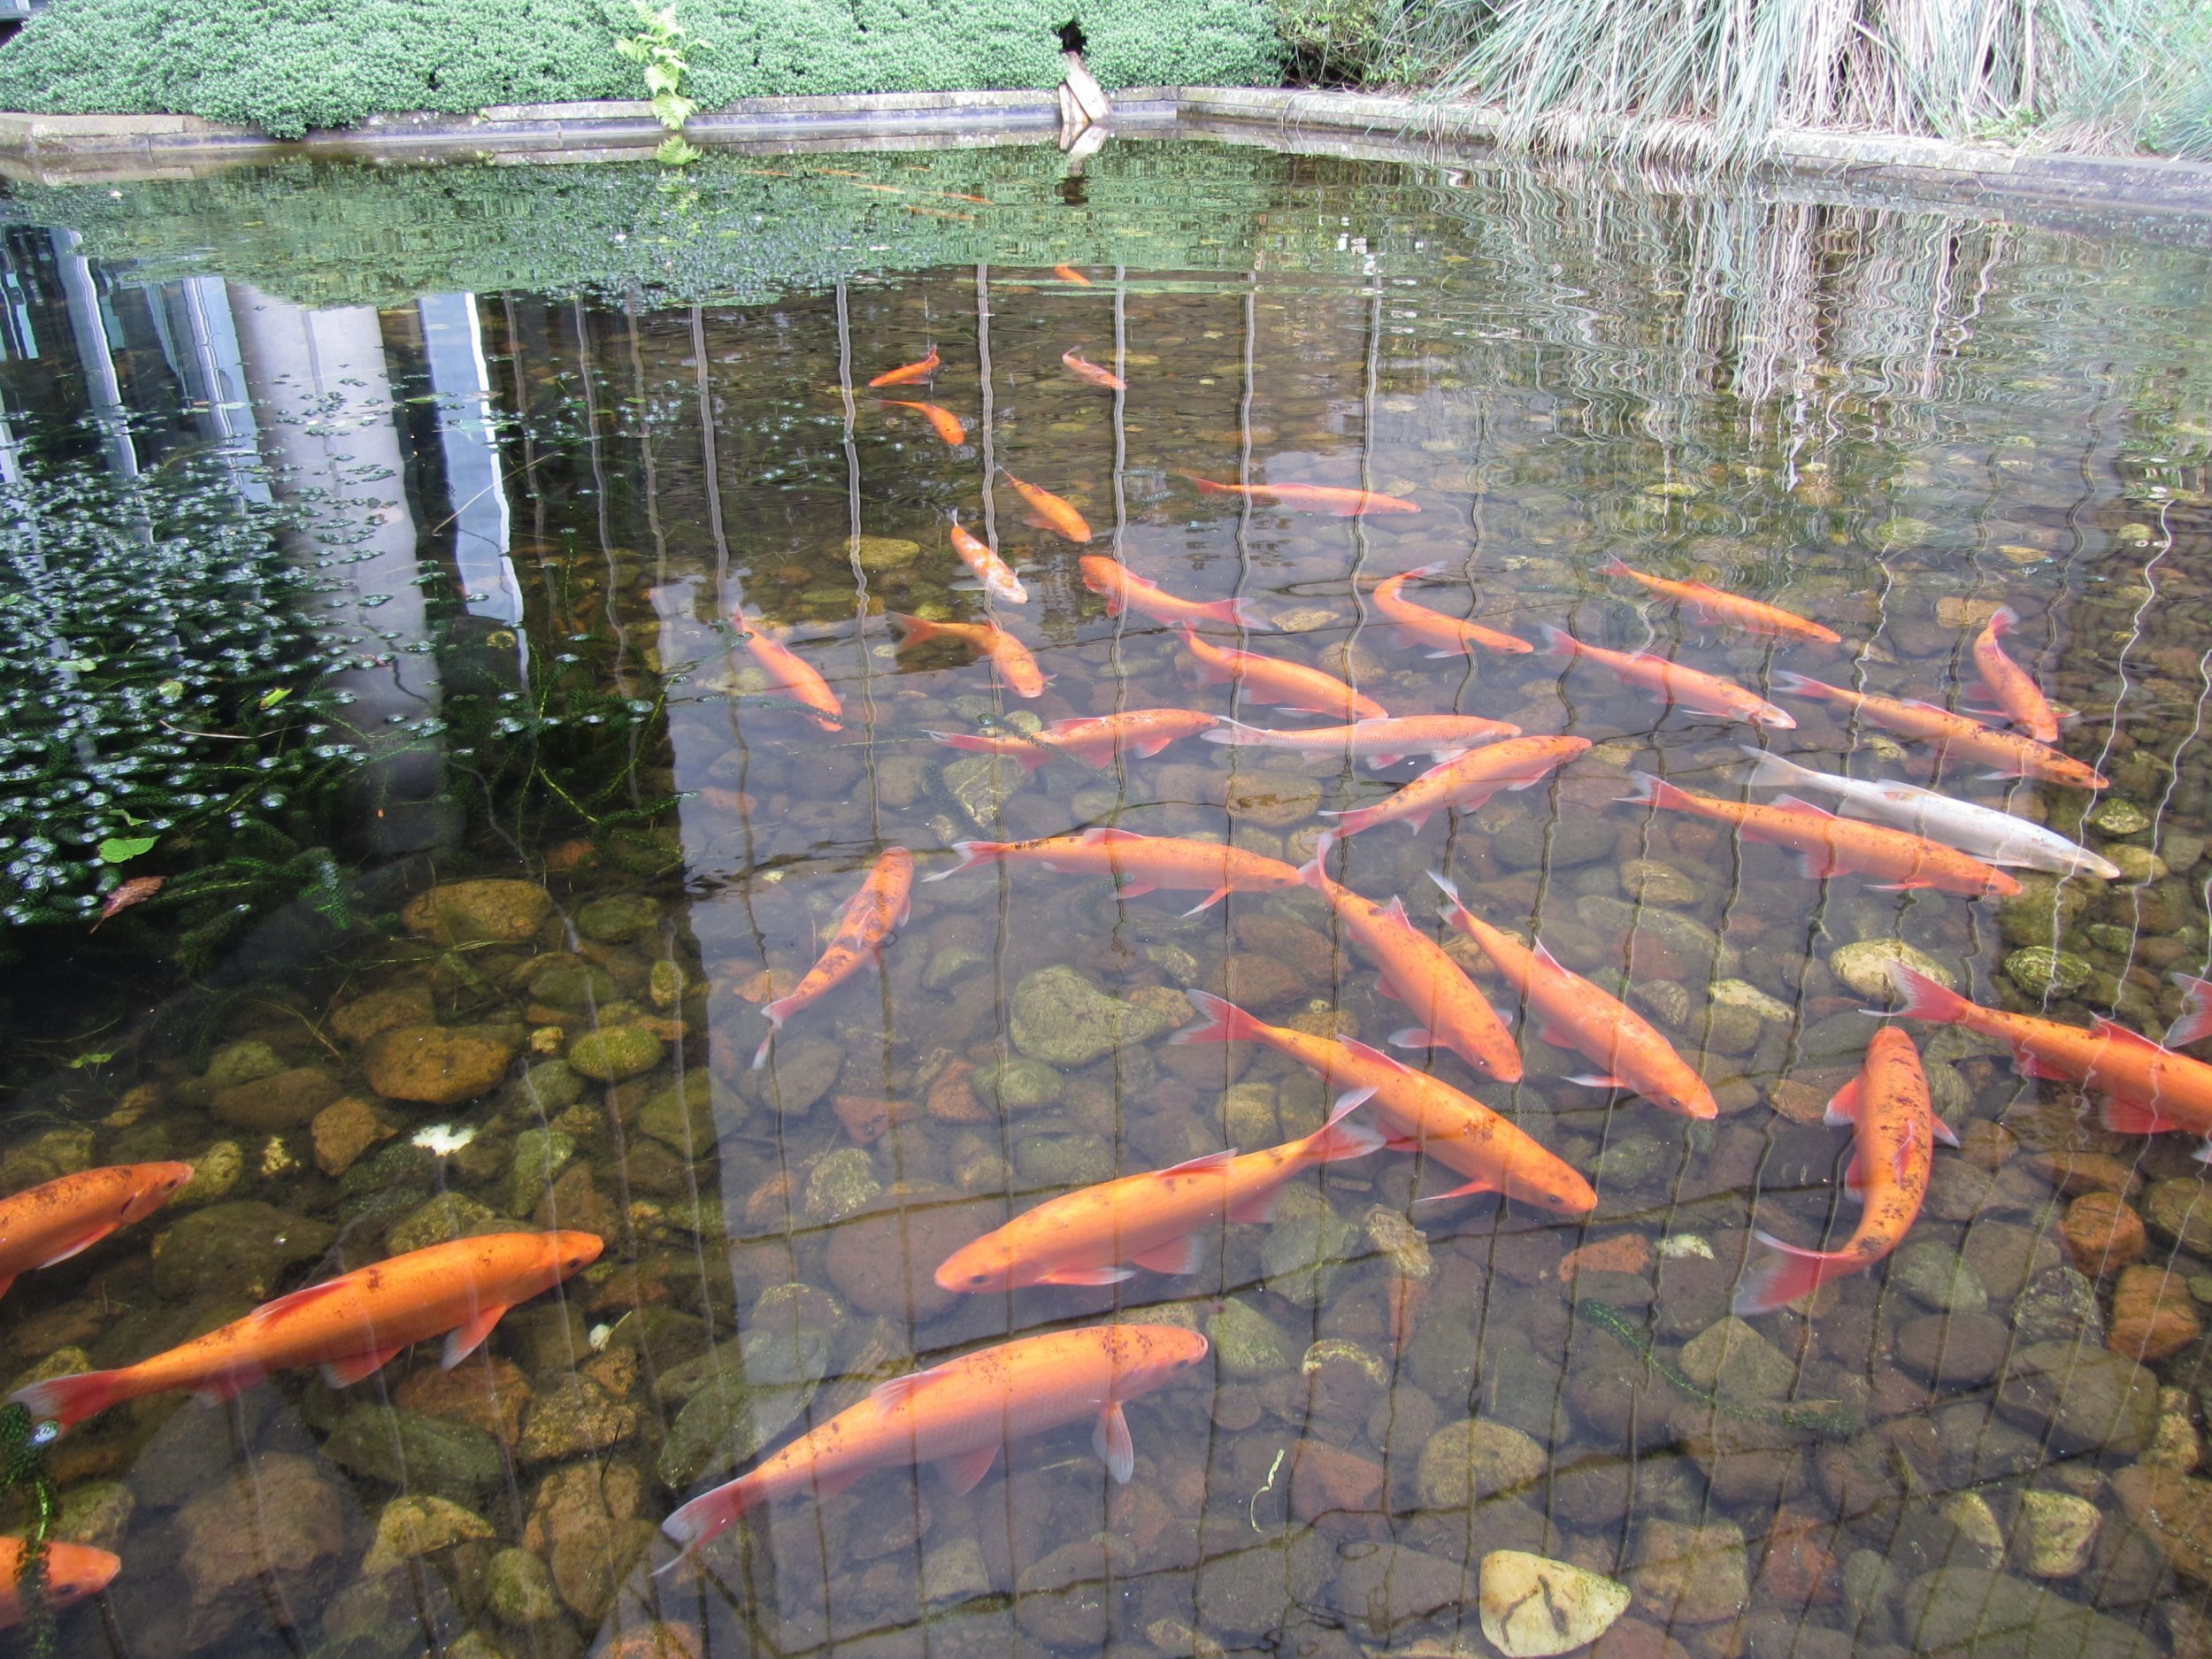 These are my favourite ornamental fish, golden orfe - long lived and beautiful.